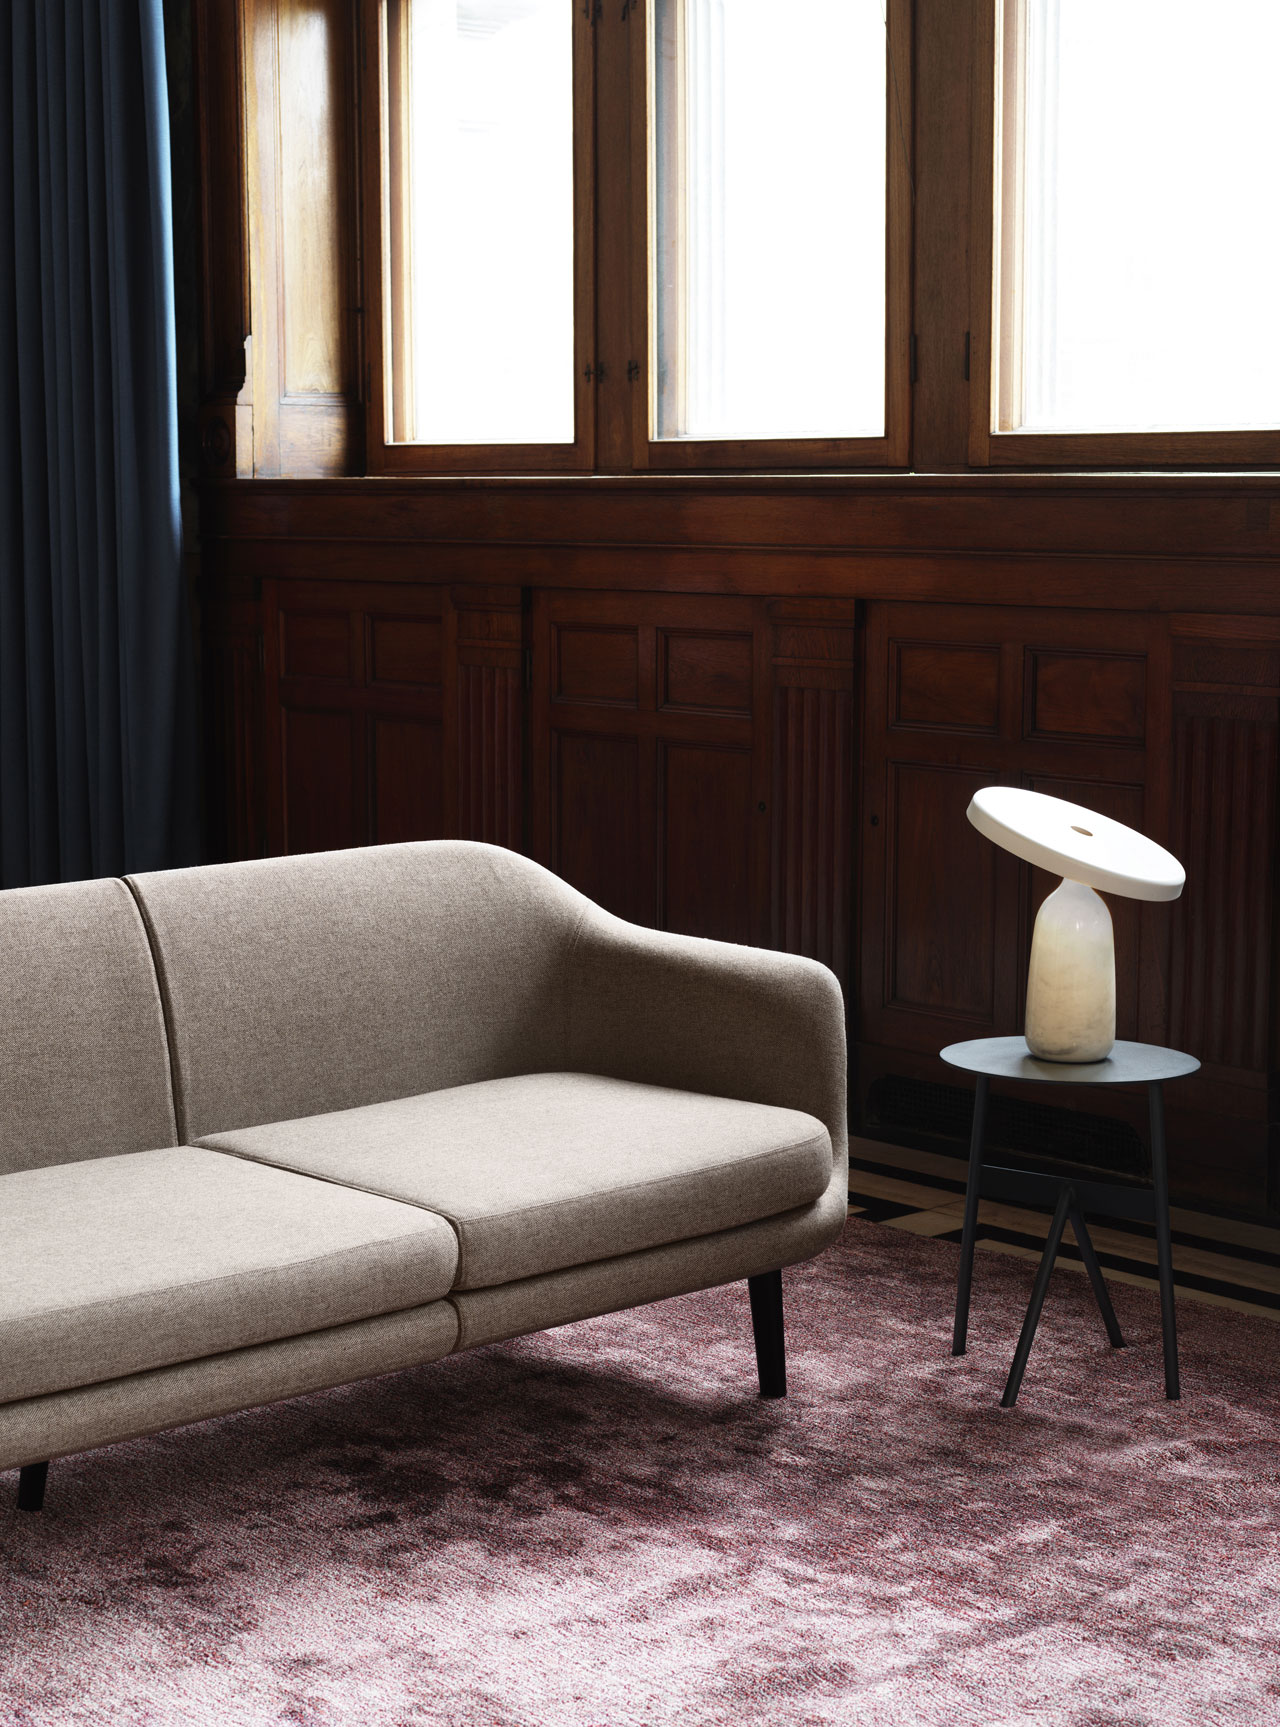 Sum sofa and Eddy table lamp by Simon Legald; Stock table by Jessica Nakanishi and Jonathan Sabine of MSDS, all designed for Normann Copenhagen.